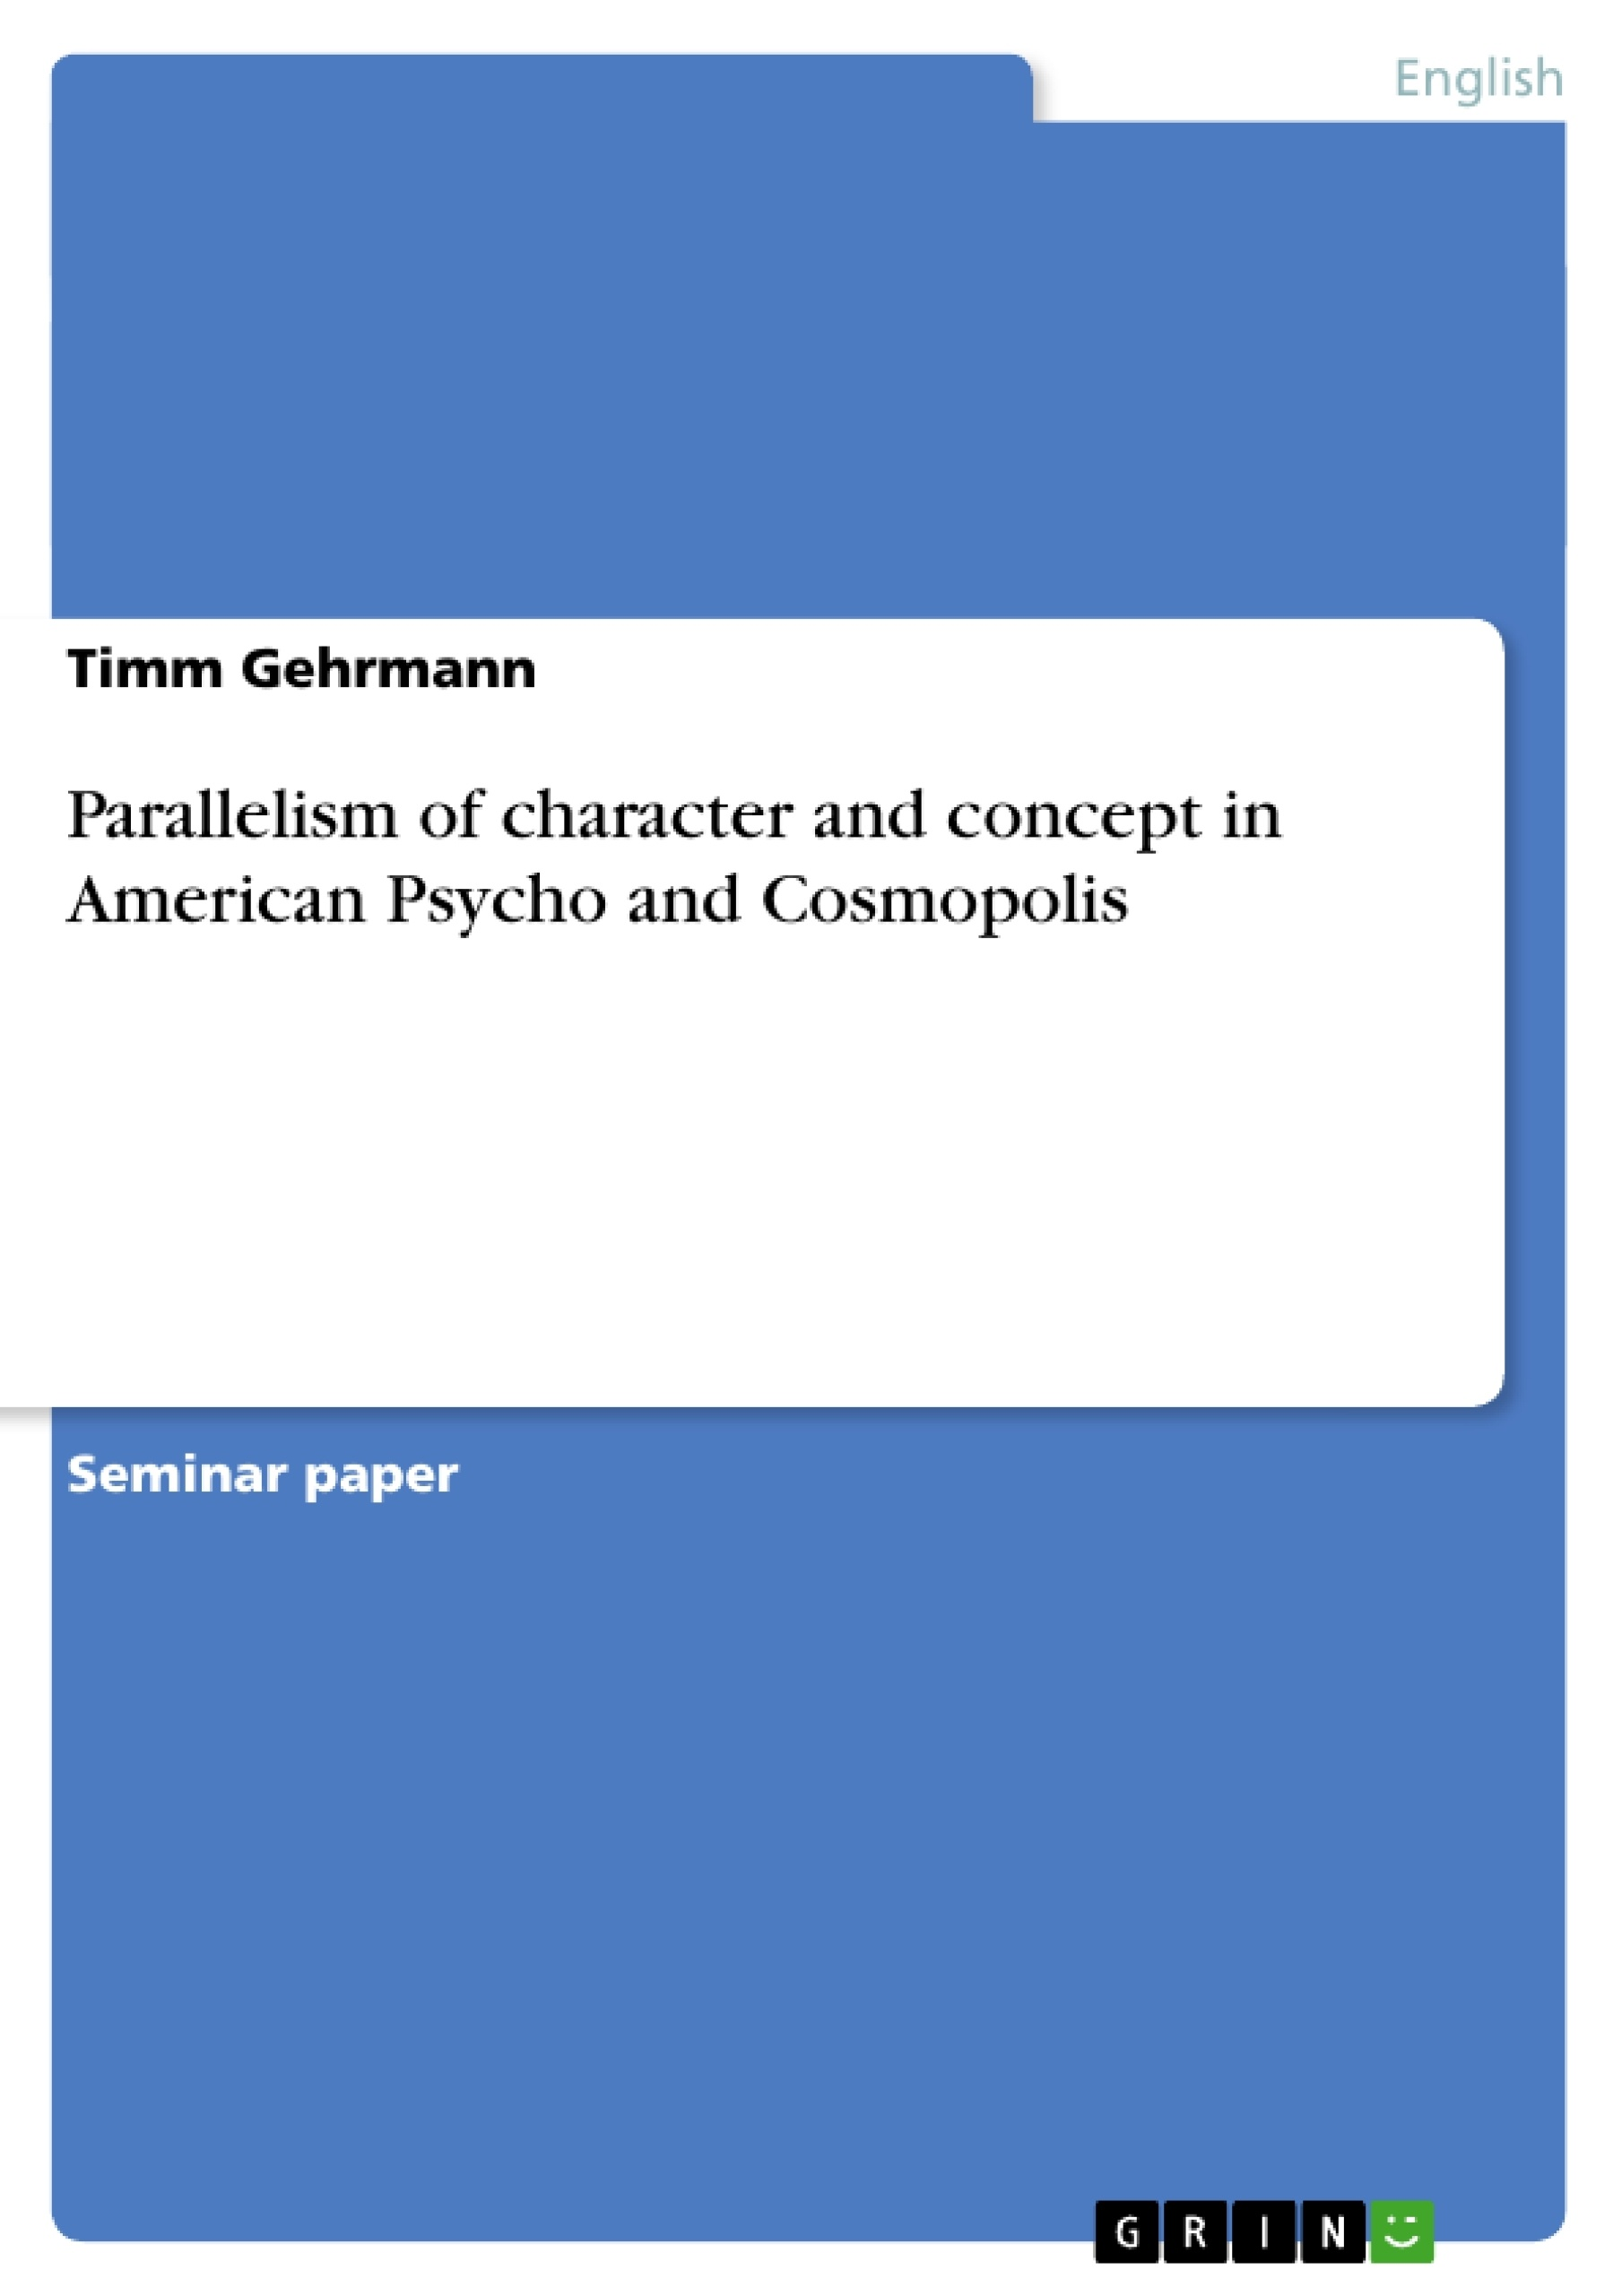 Title: Parallelism of character and concept in American Psycho and Cosmopolis